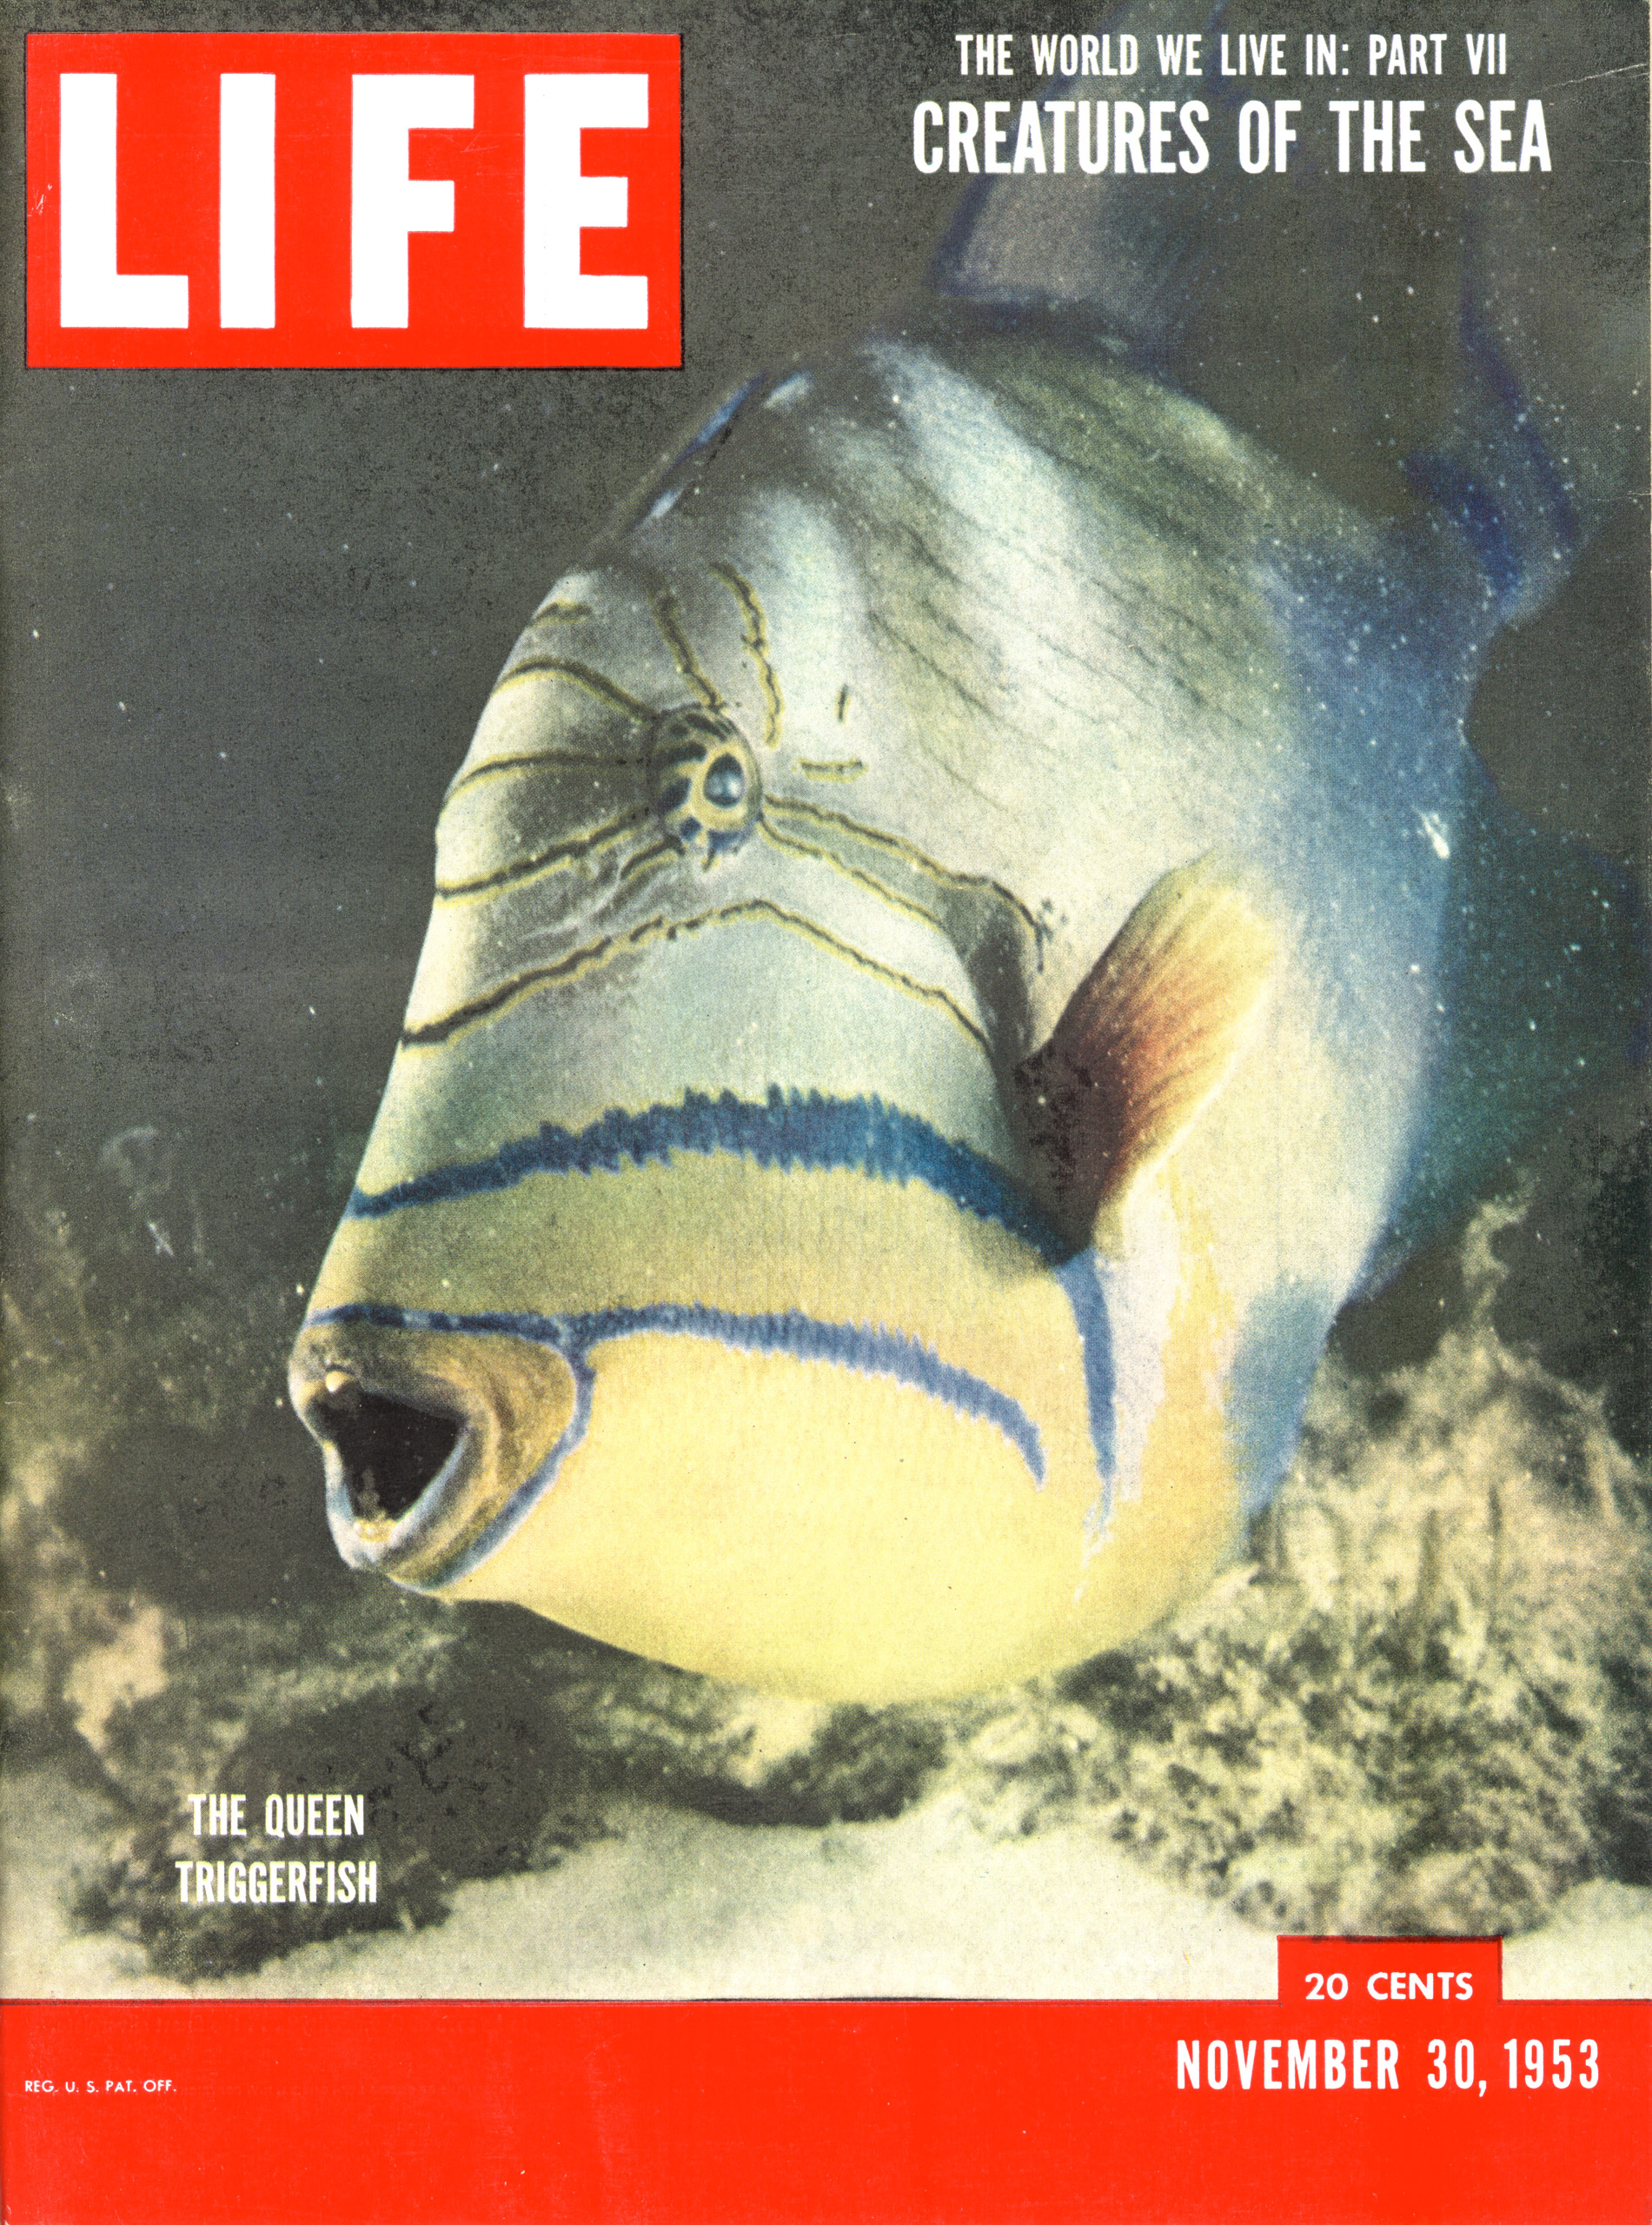 November 30, 1953 LIFE Magazine cover (photo by Fritz Goro).